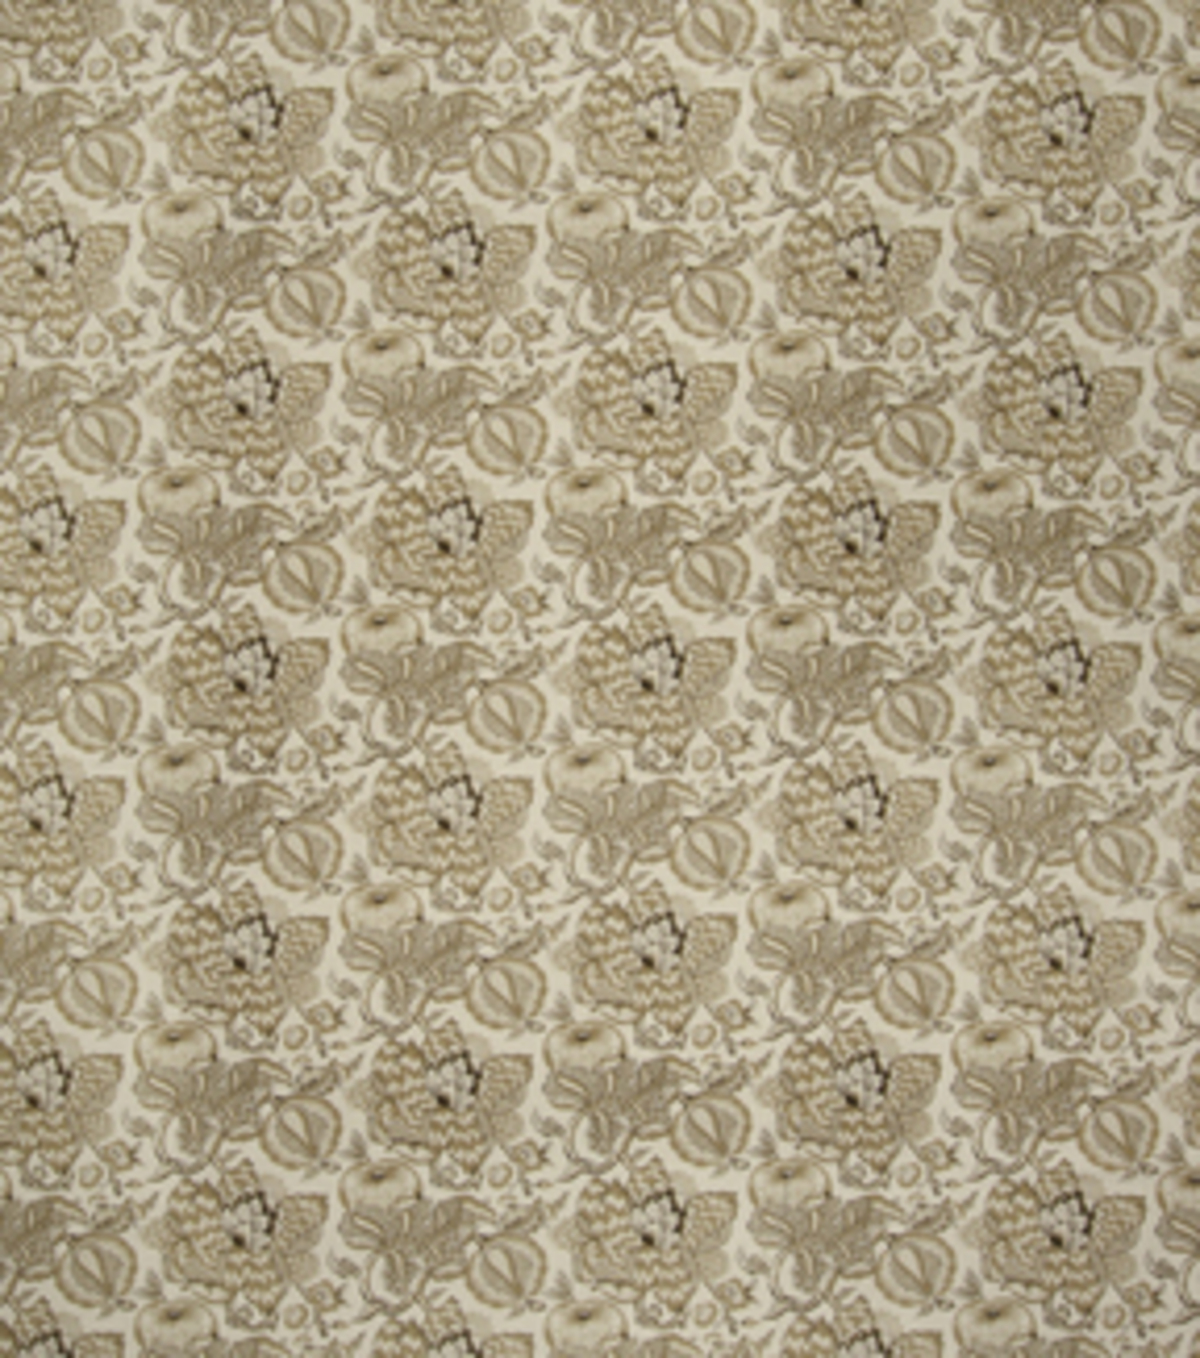 Home Decor 8\u0022x8\u0022 Fabric Swatch-French General Camilla Hemp